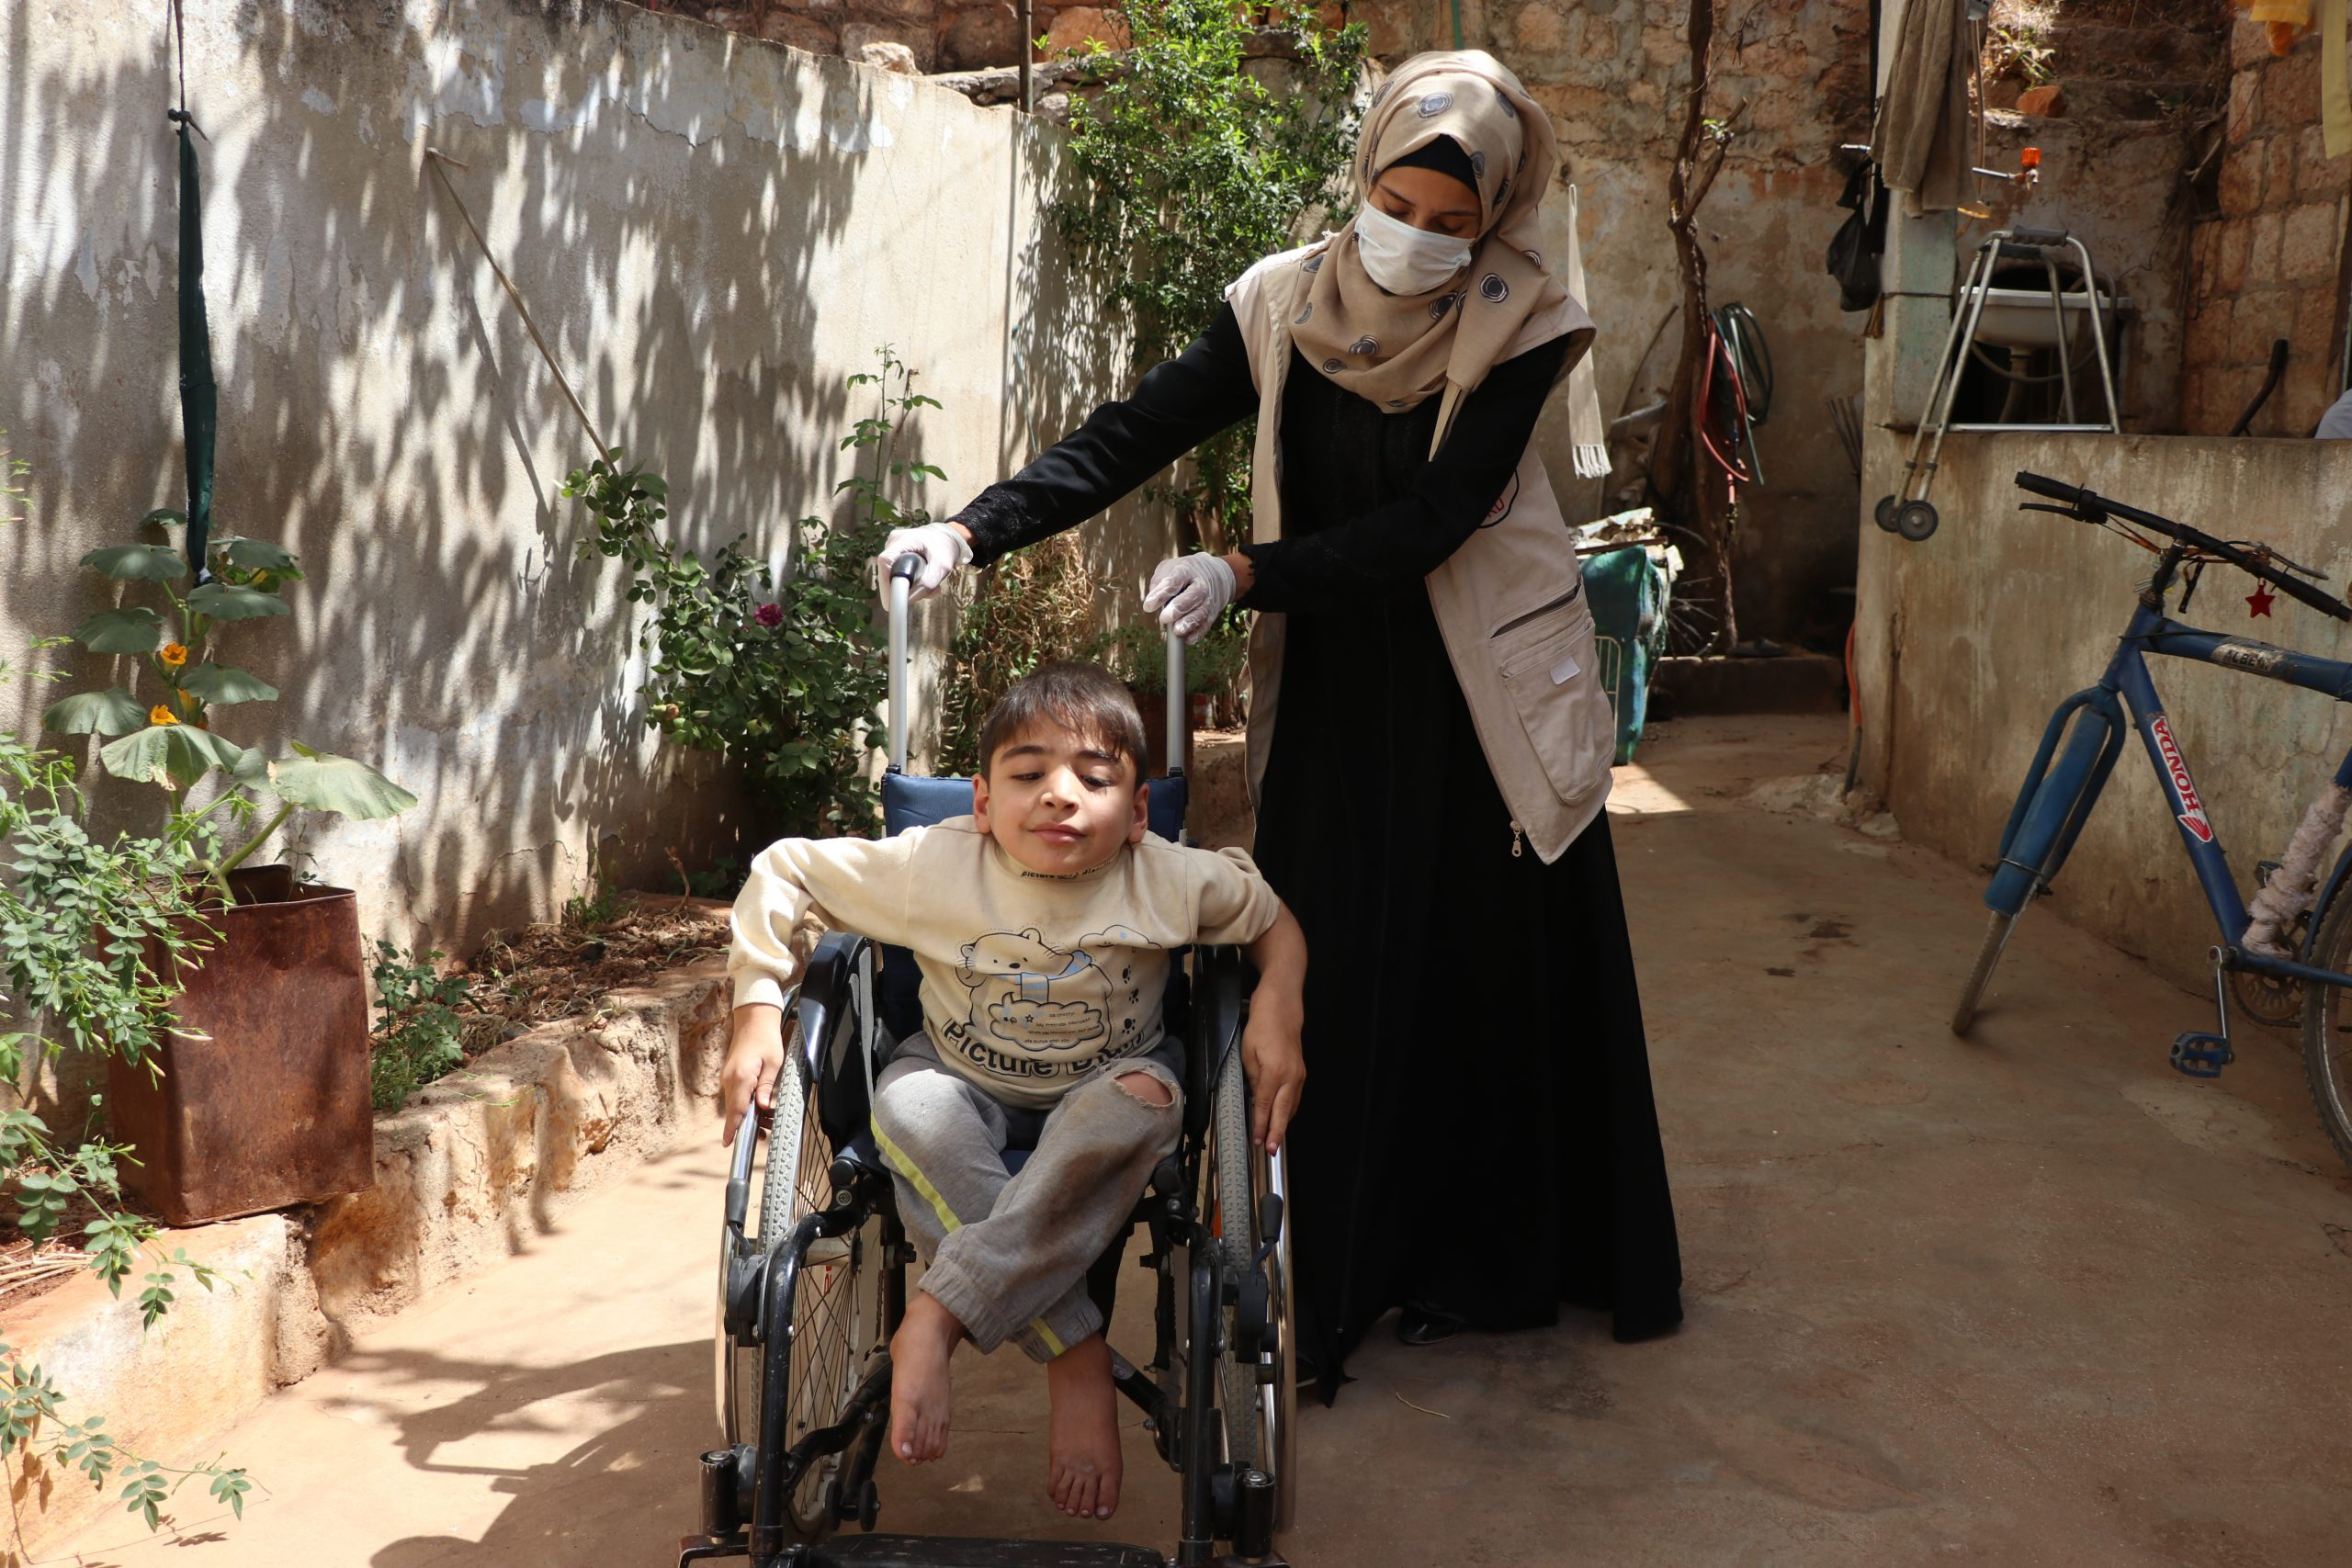 Child with Disability Recovery